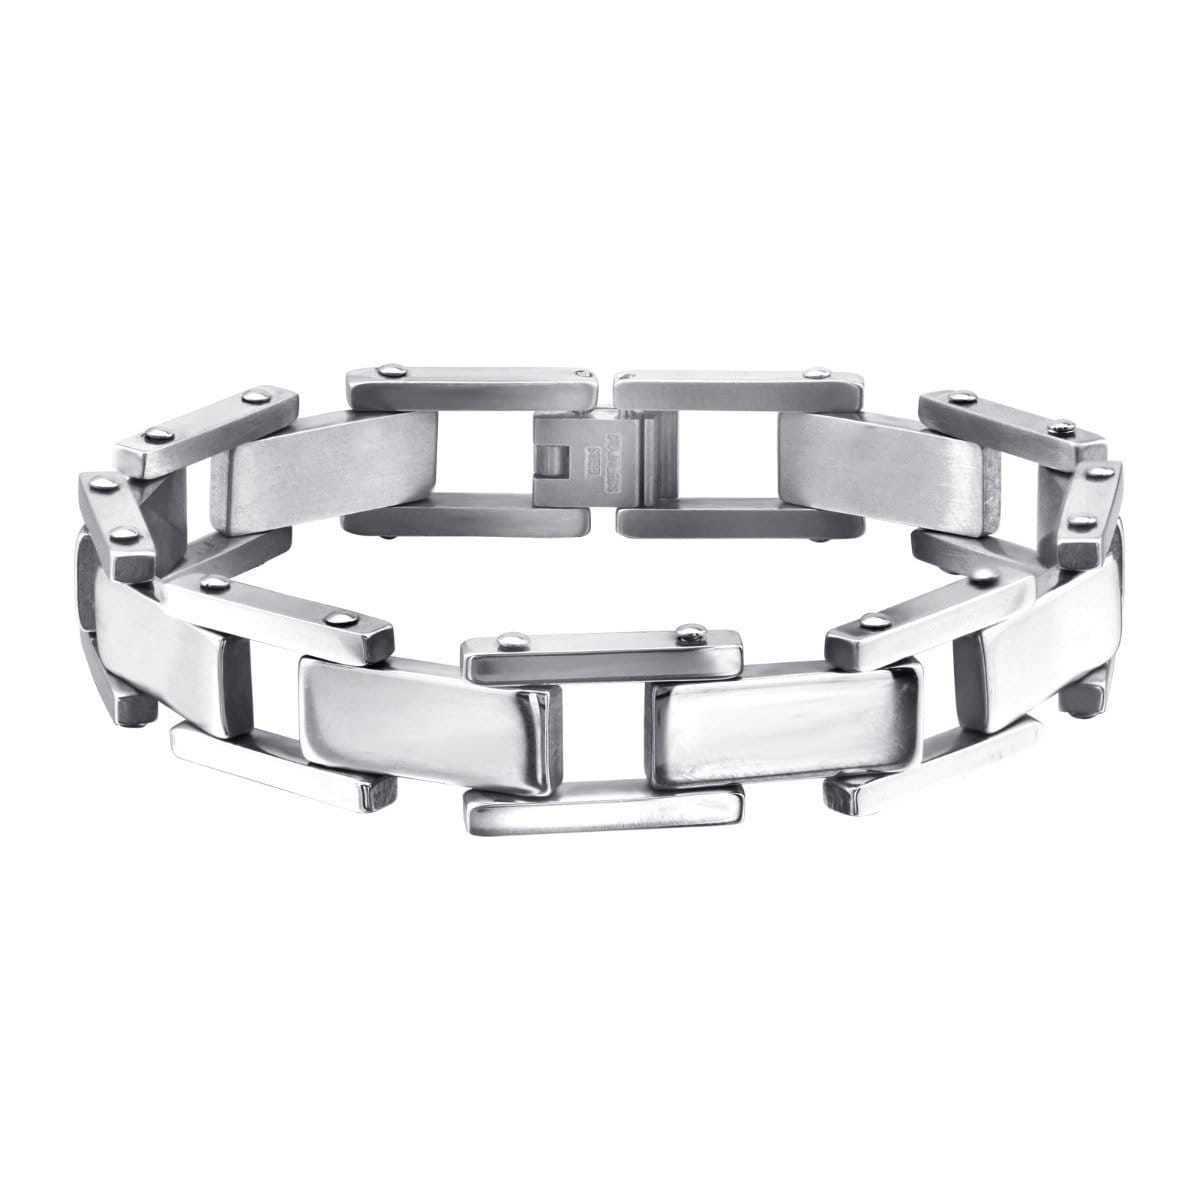 Men's Stainless Steel Chain Bracelet 21 CM